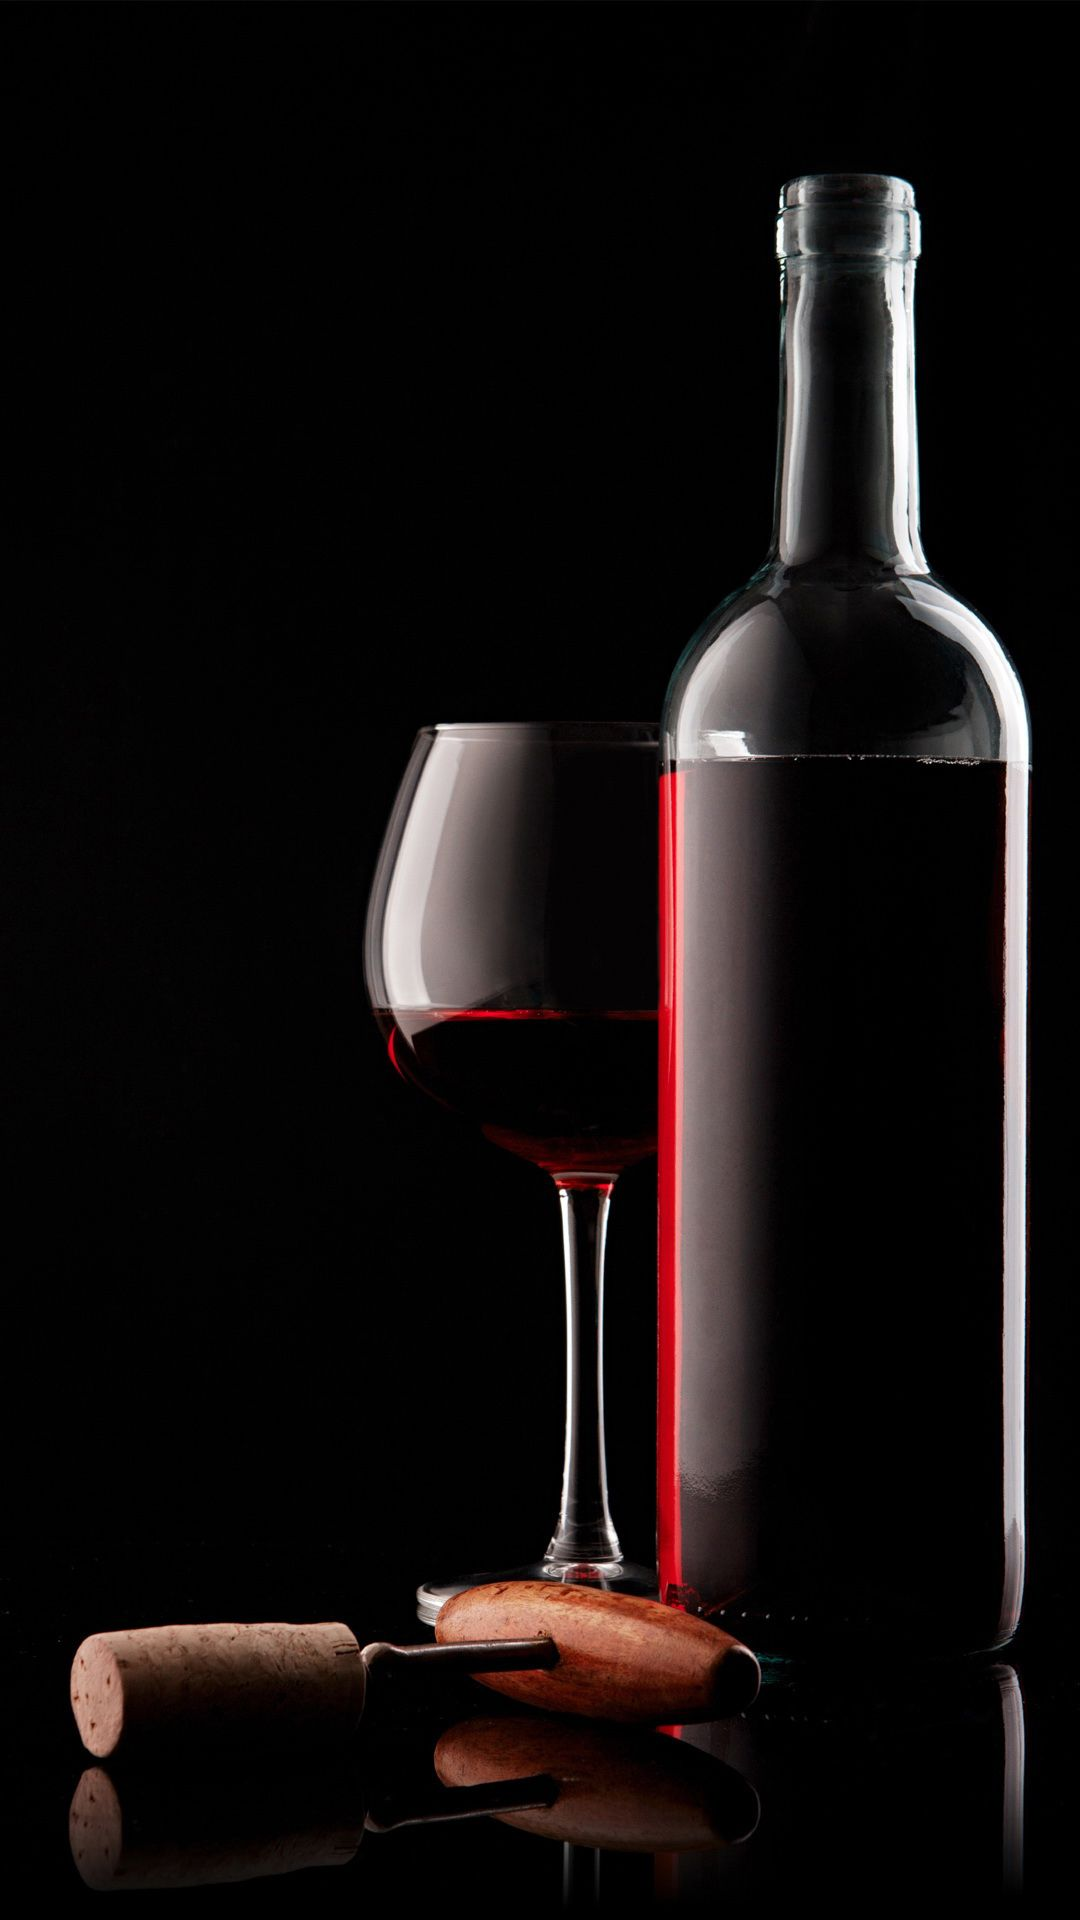 Red Wine Glass Bottle And Corkscrew Iphone 6 Wallpaper In